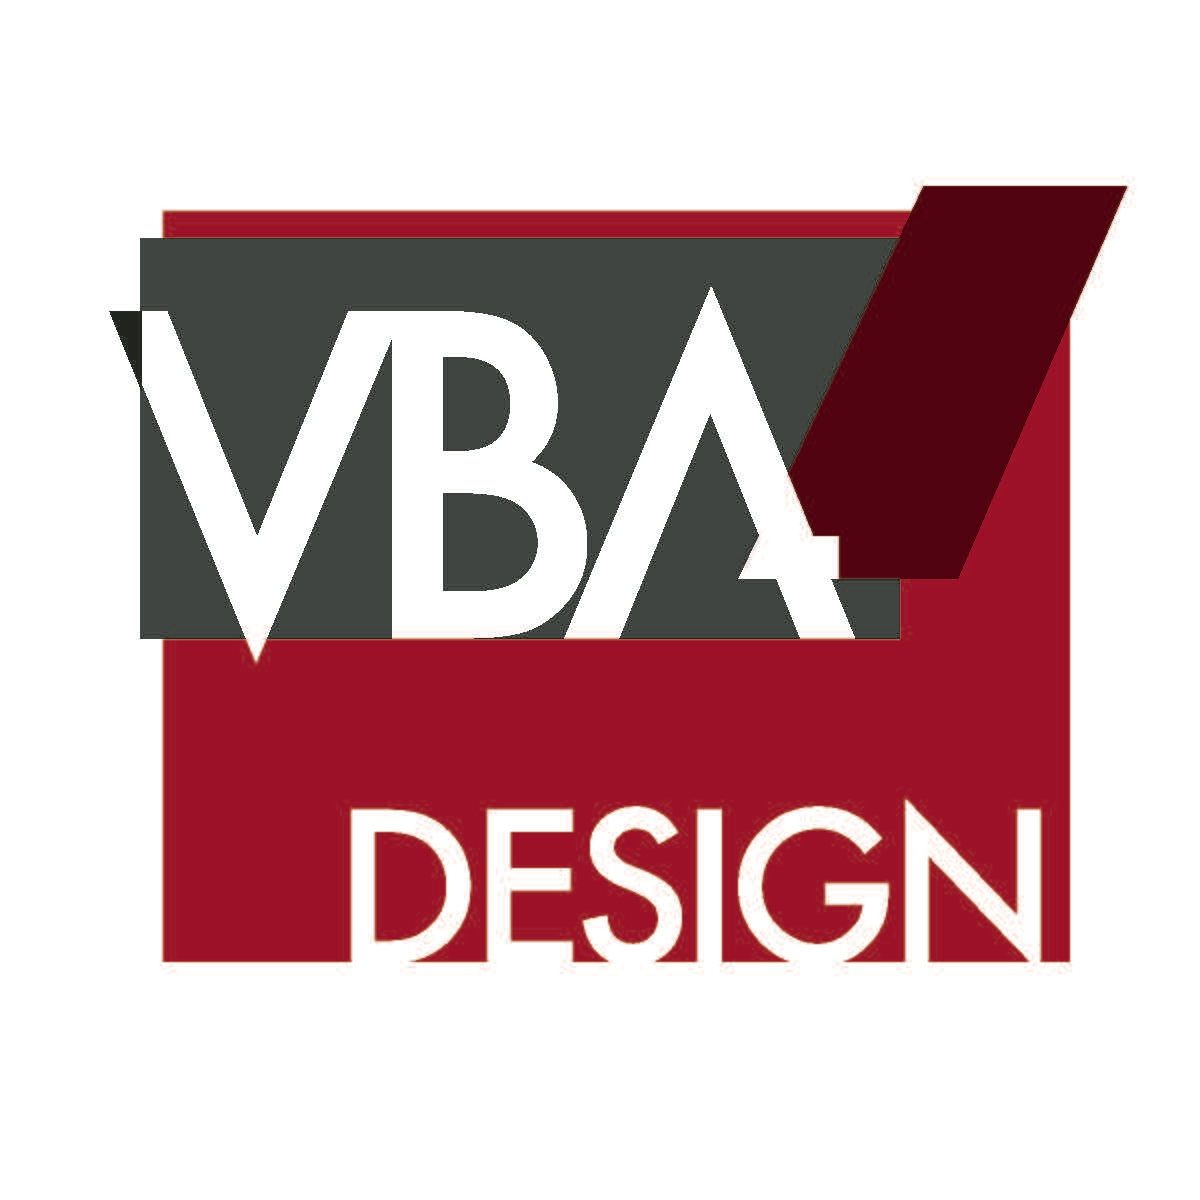 VBA Design Inc